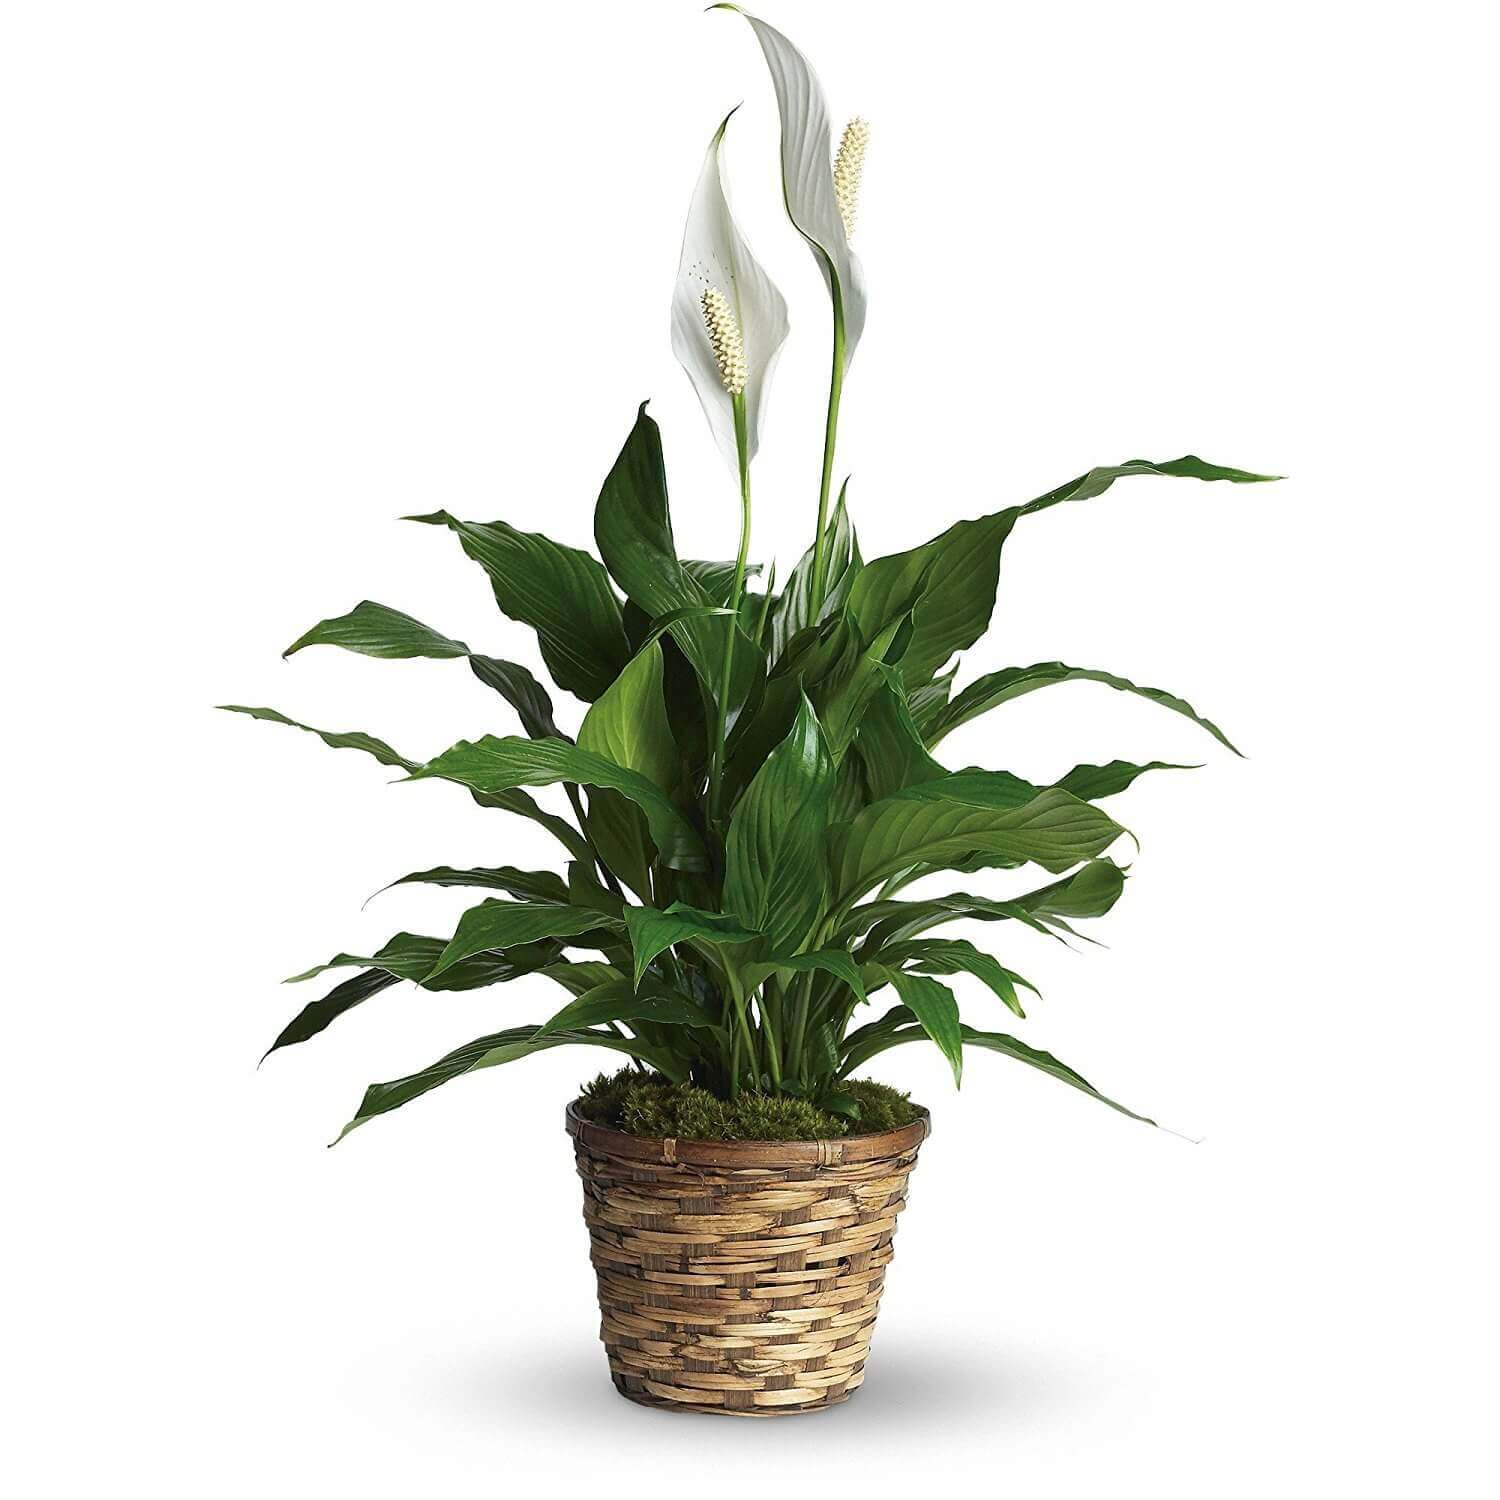 Indoor Plants For The Office 7 Best Indoor Plants That Survive In Limited Light Under The Roof